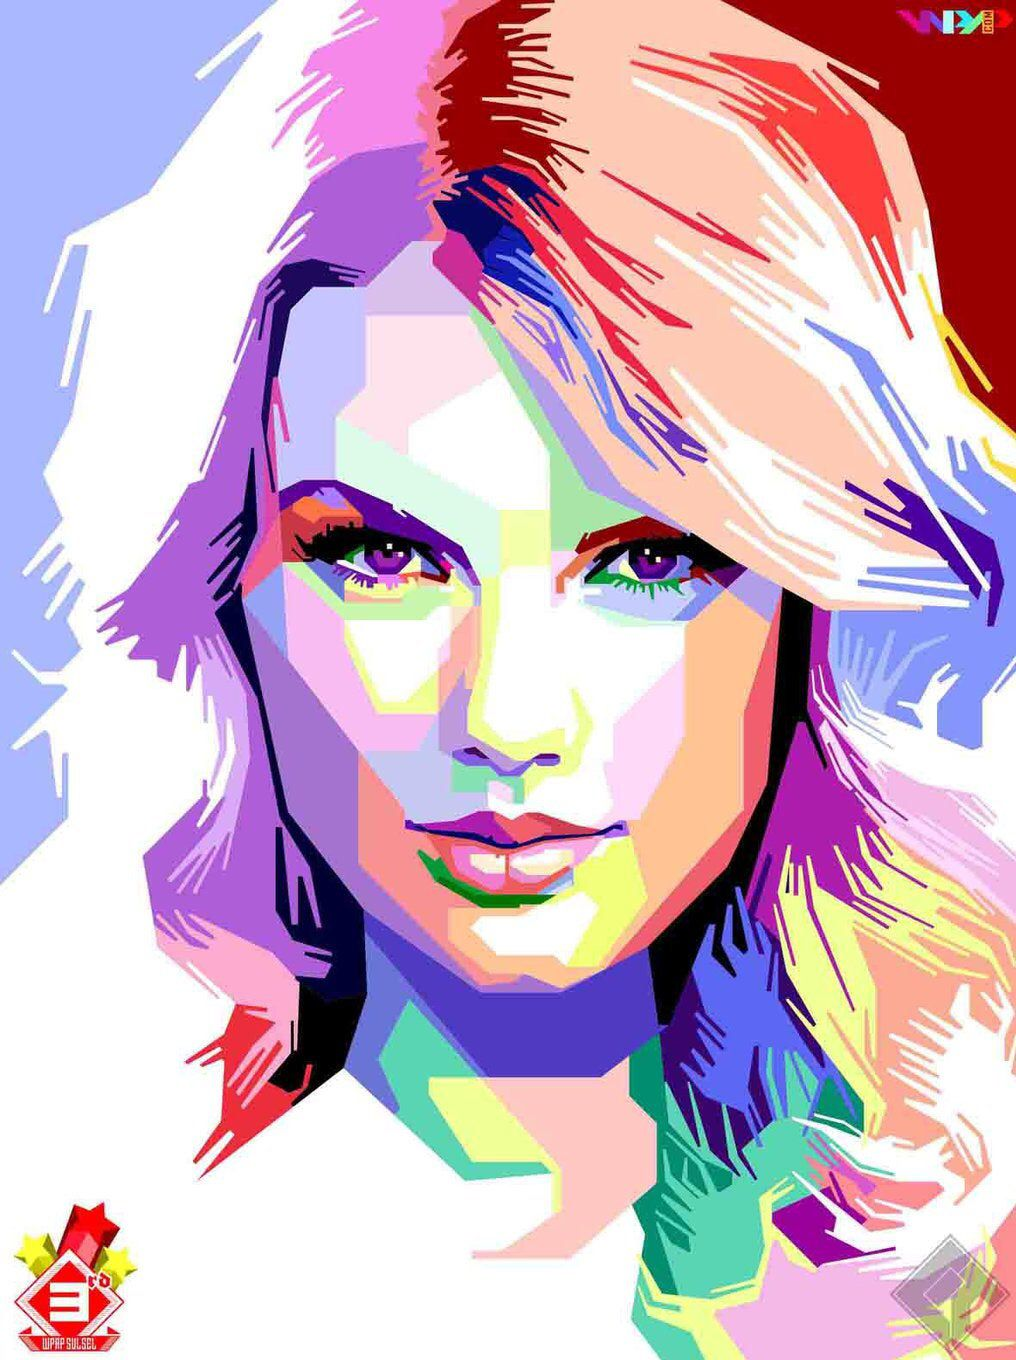 Taylor Swift Popart Glossy Art Print 8x10 Inches A4 Individually Numbered By Giftsnbobs On Etsy Https Www Etsy Com Listi Wpap Art Pop Art Portraits Pop Art